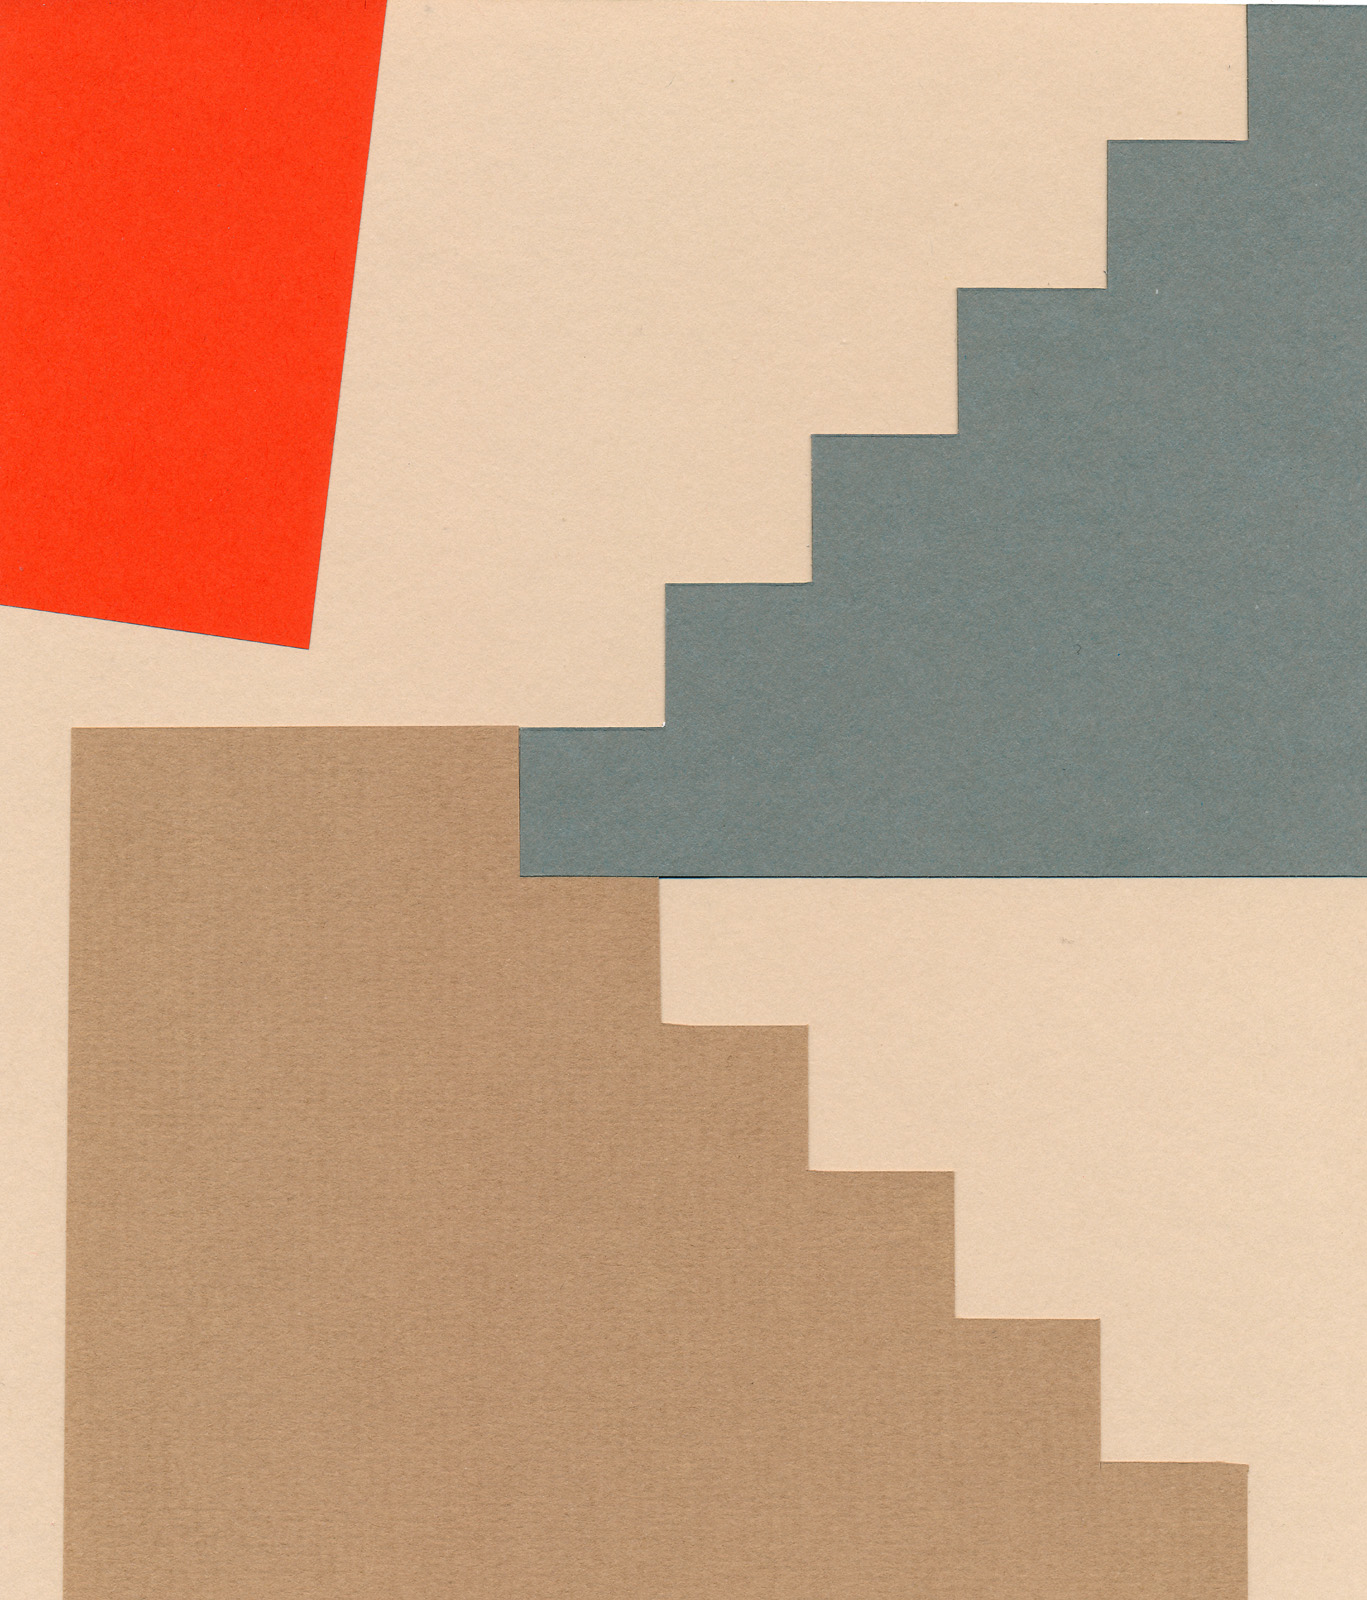 Red Landing Curtain, paper-cut collage